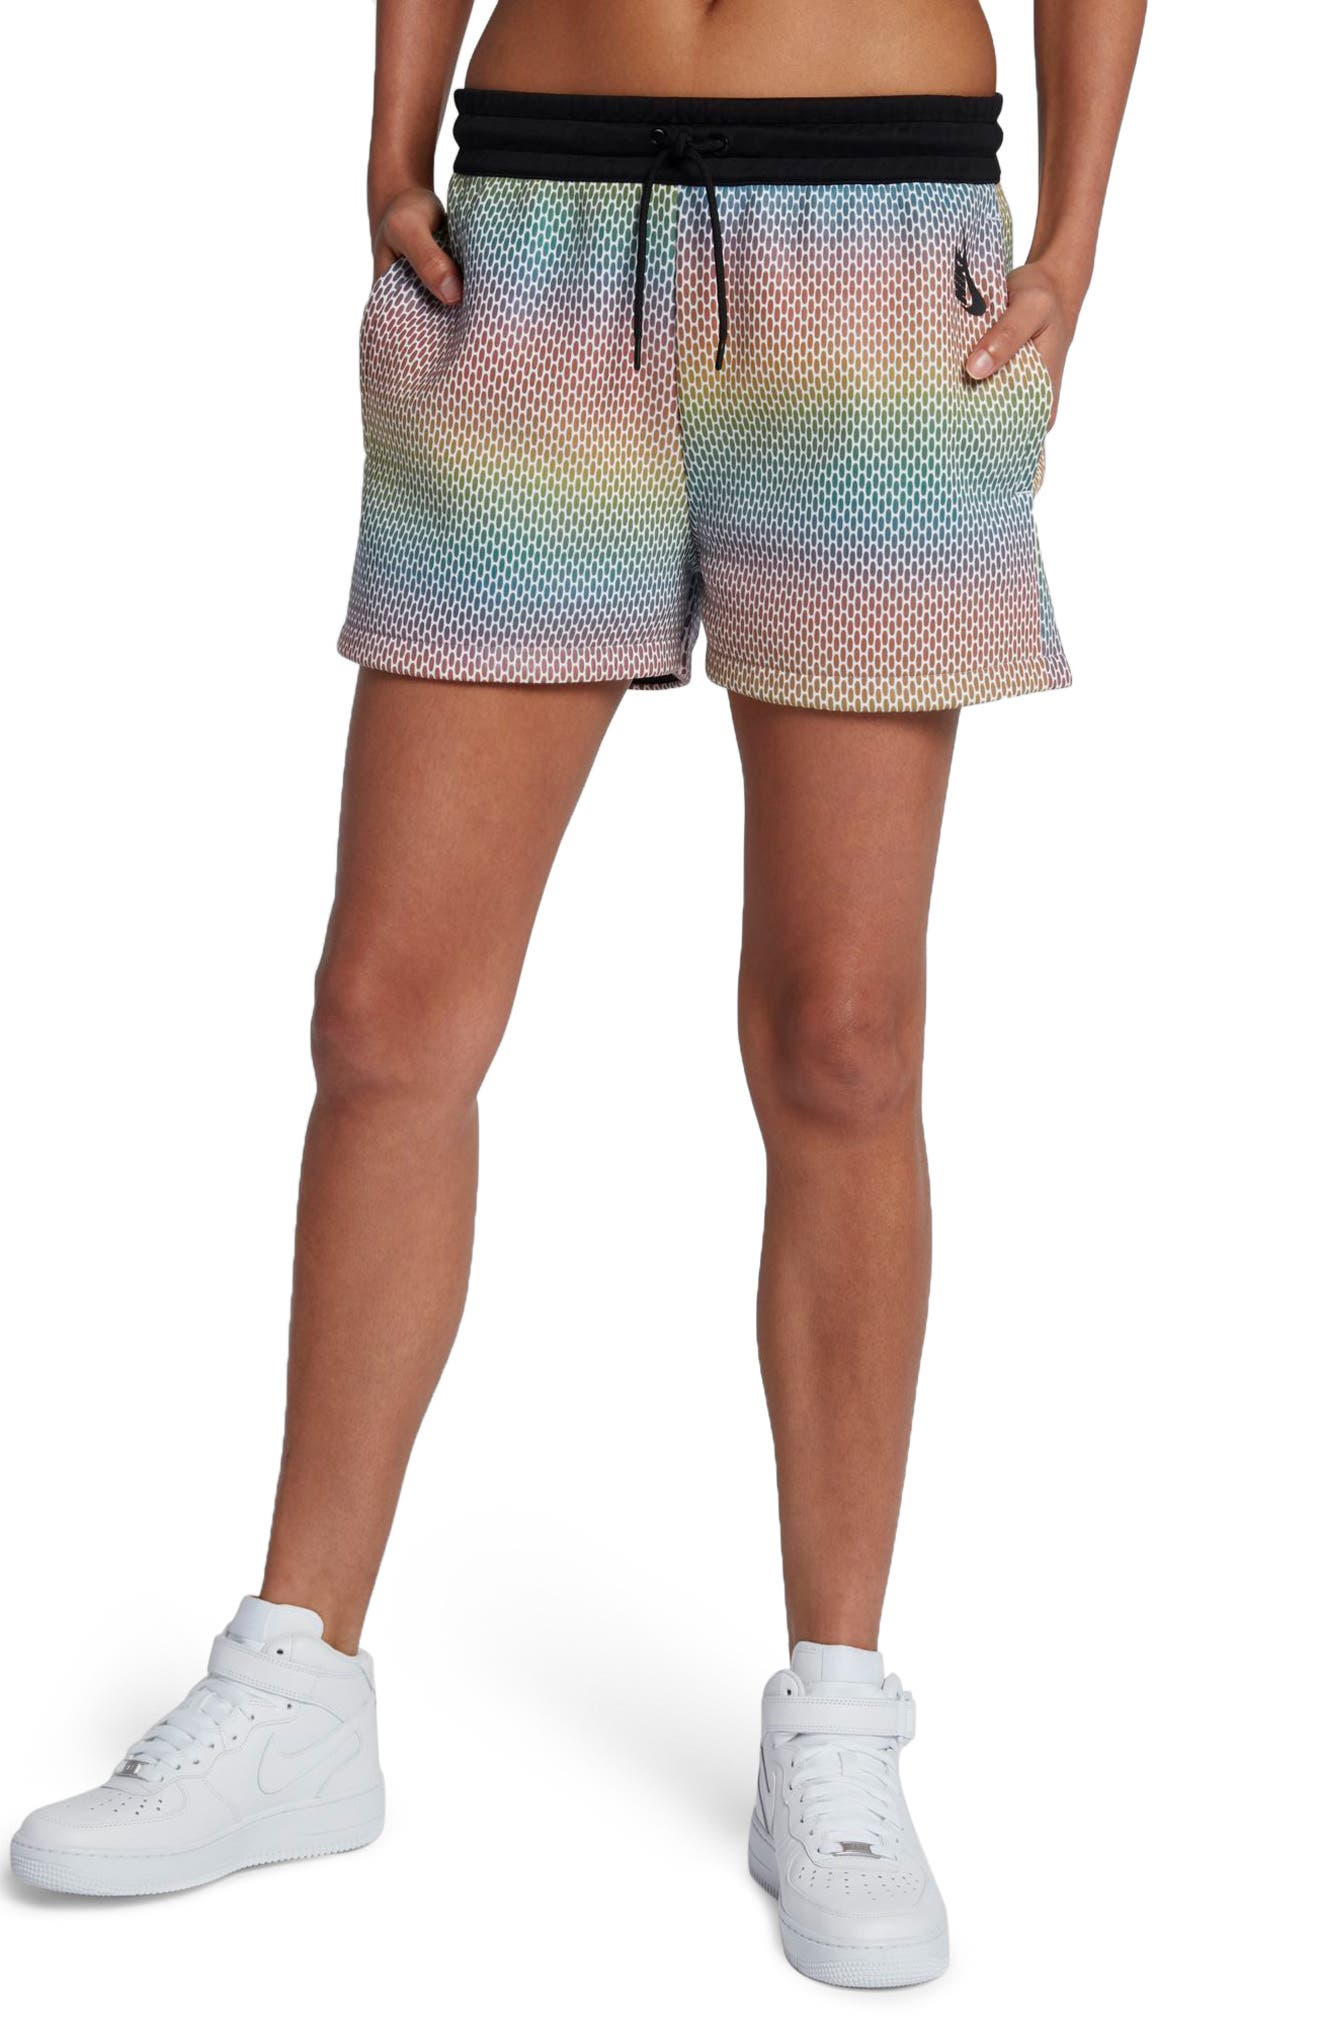 NikeLab Oil Slick Shorts,                             Main thumbnail 1, color,                             100